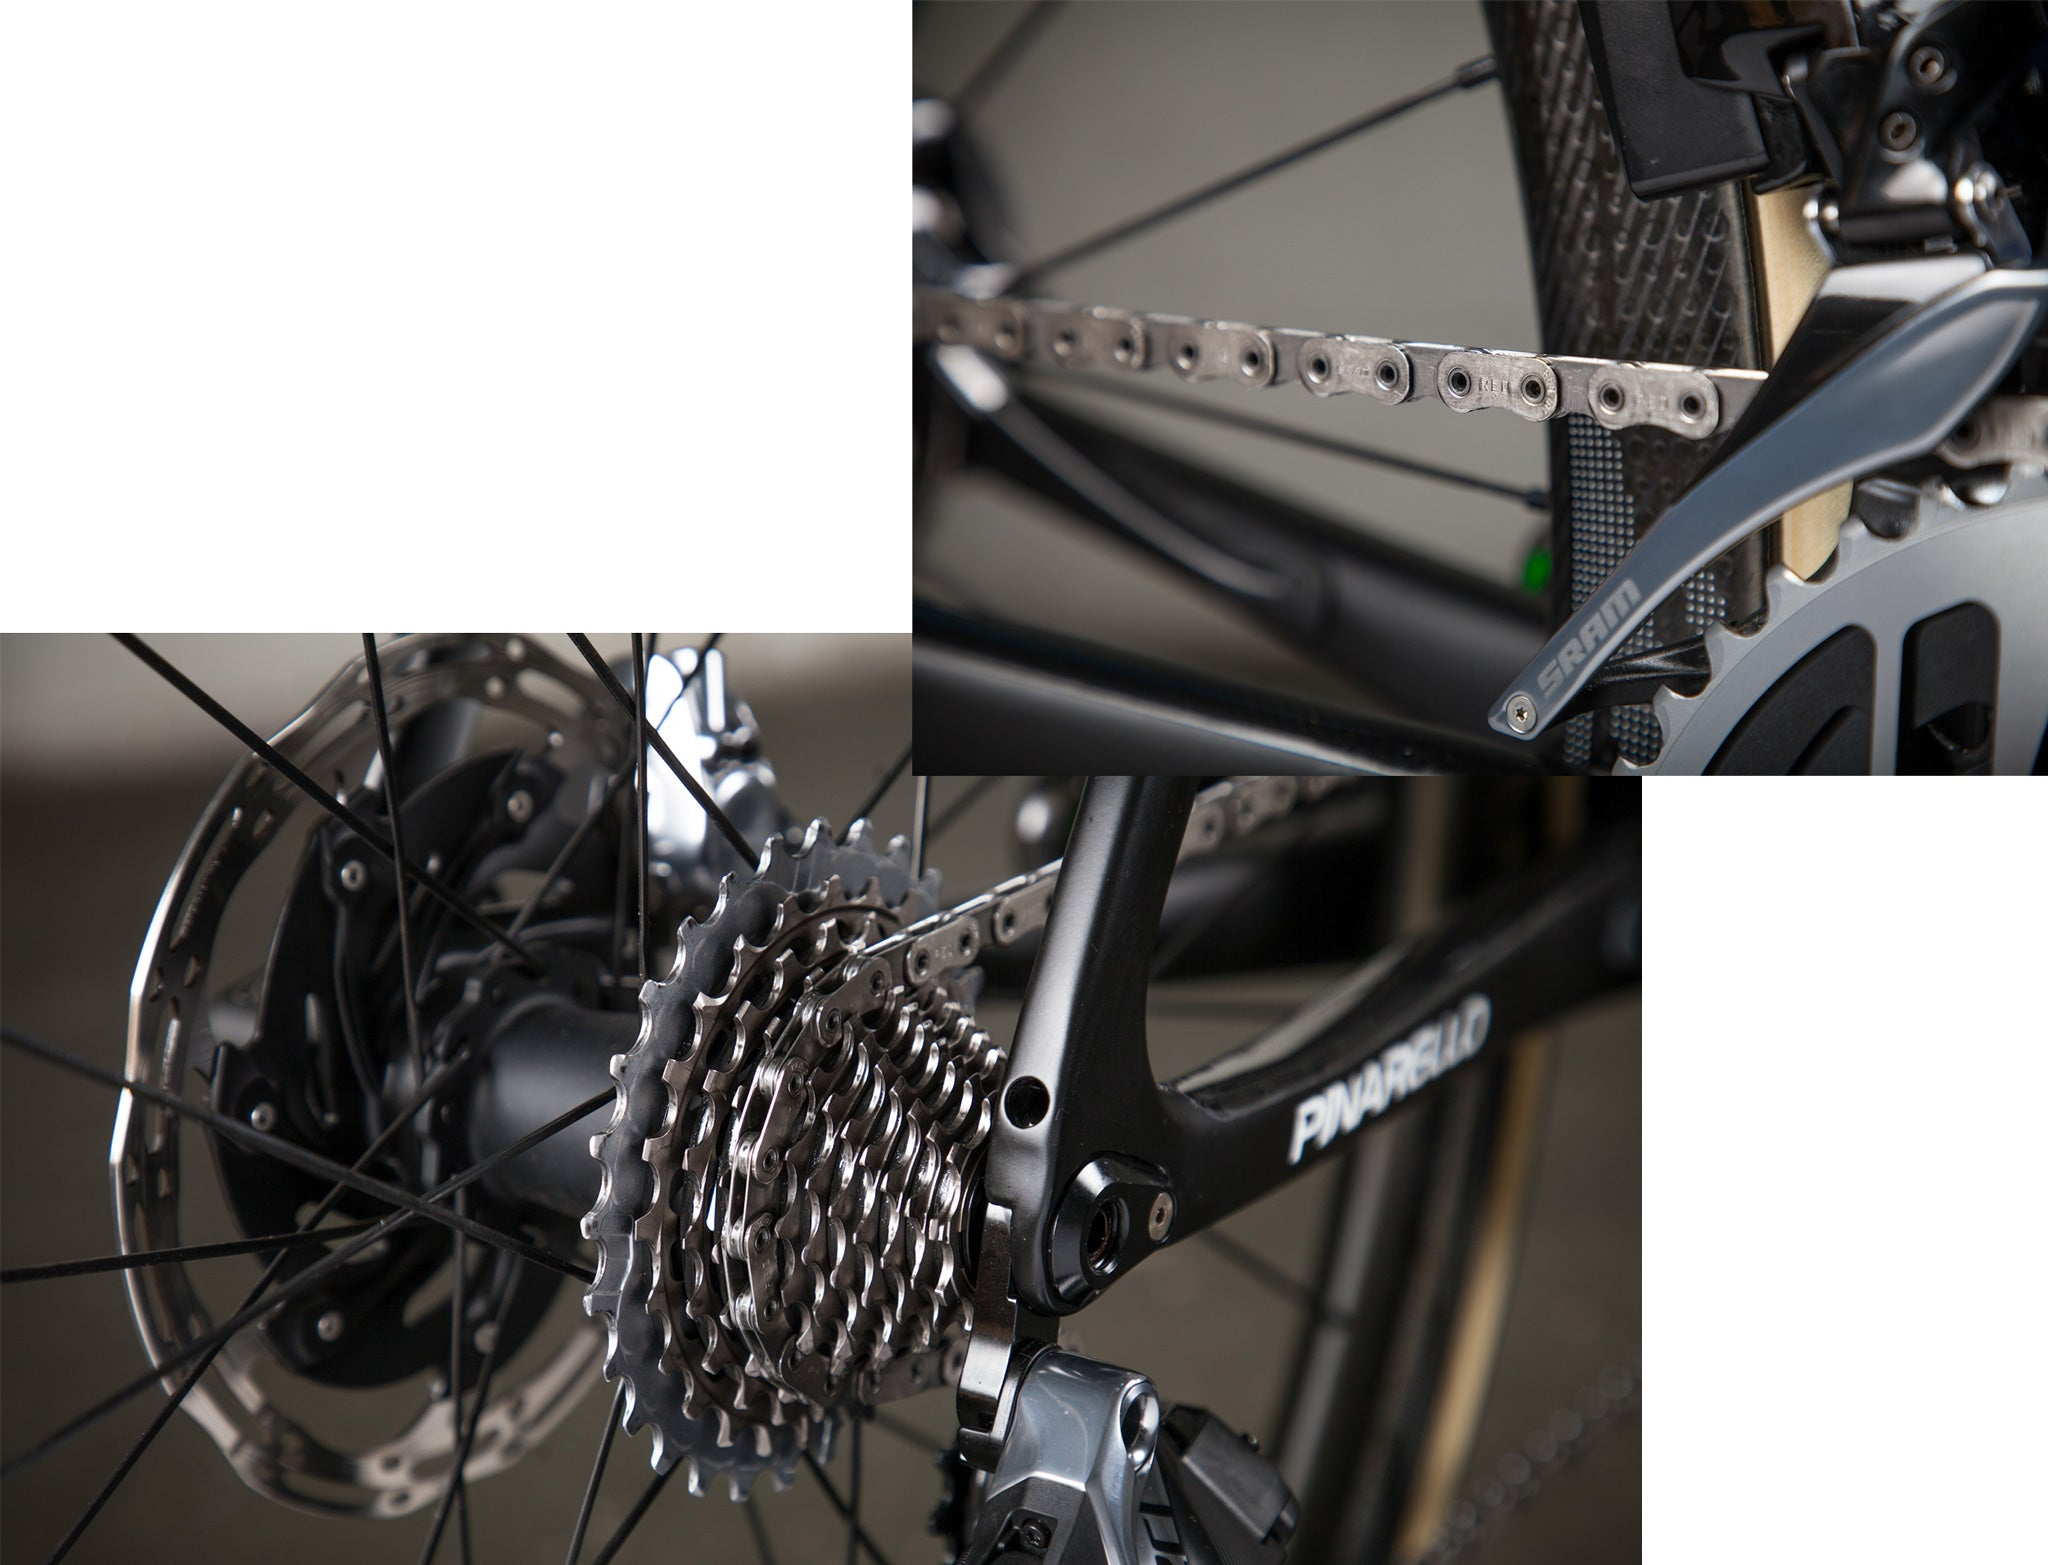 sram axs red launch cassette